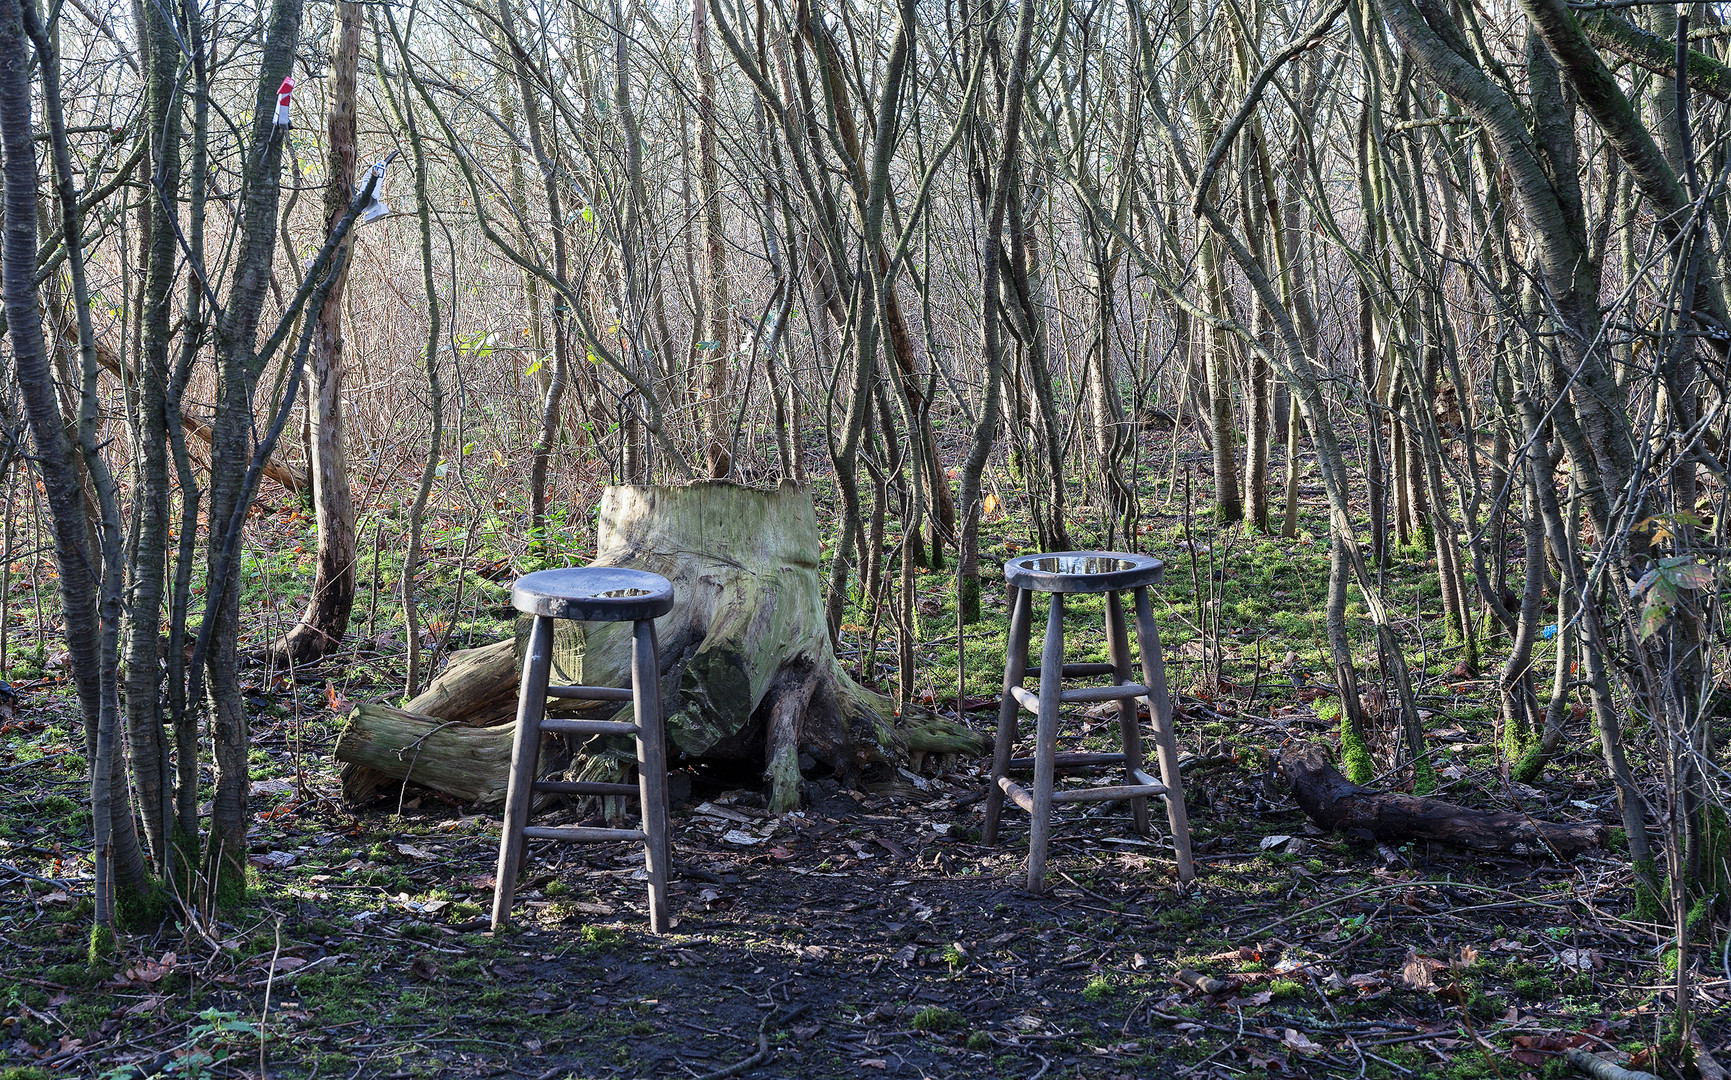 Two bar stools in a thicket, Wimbledon Common, London, England, UK